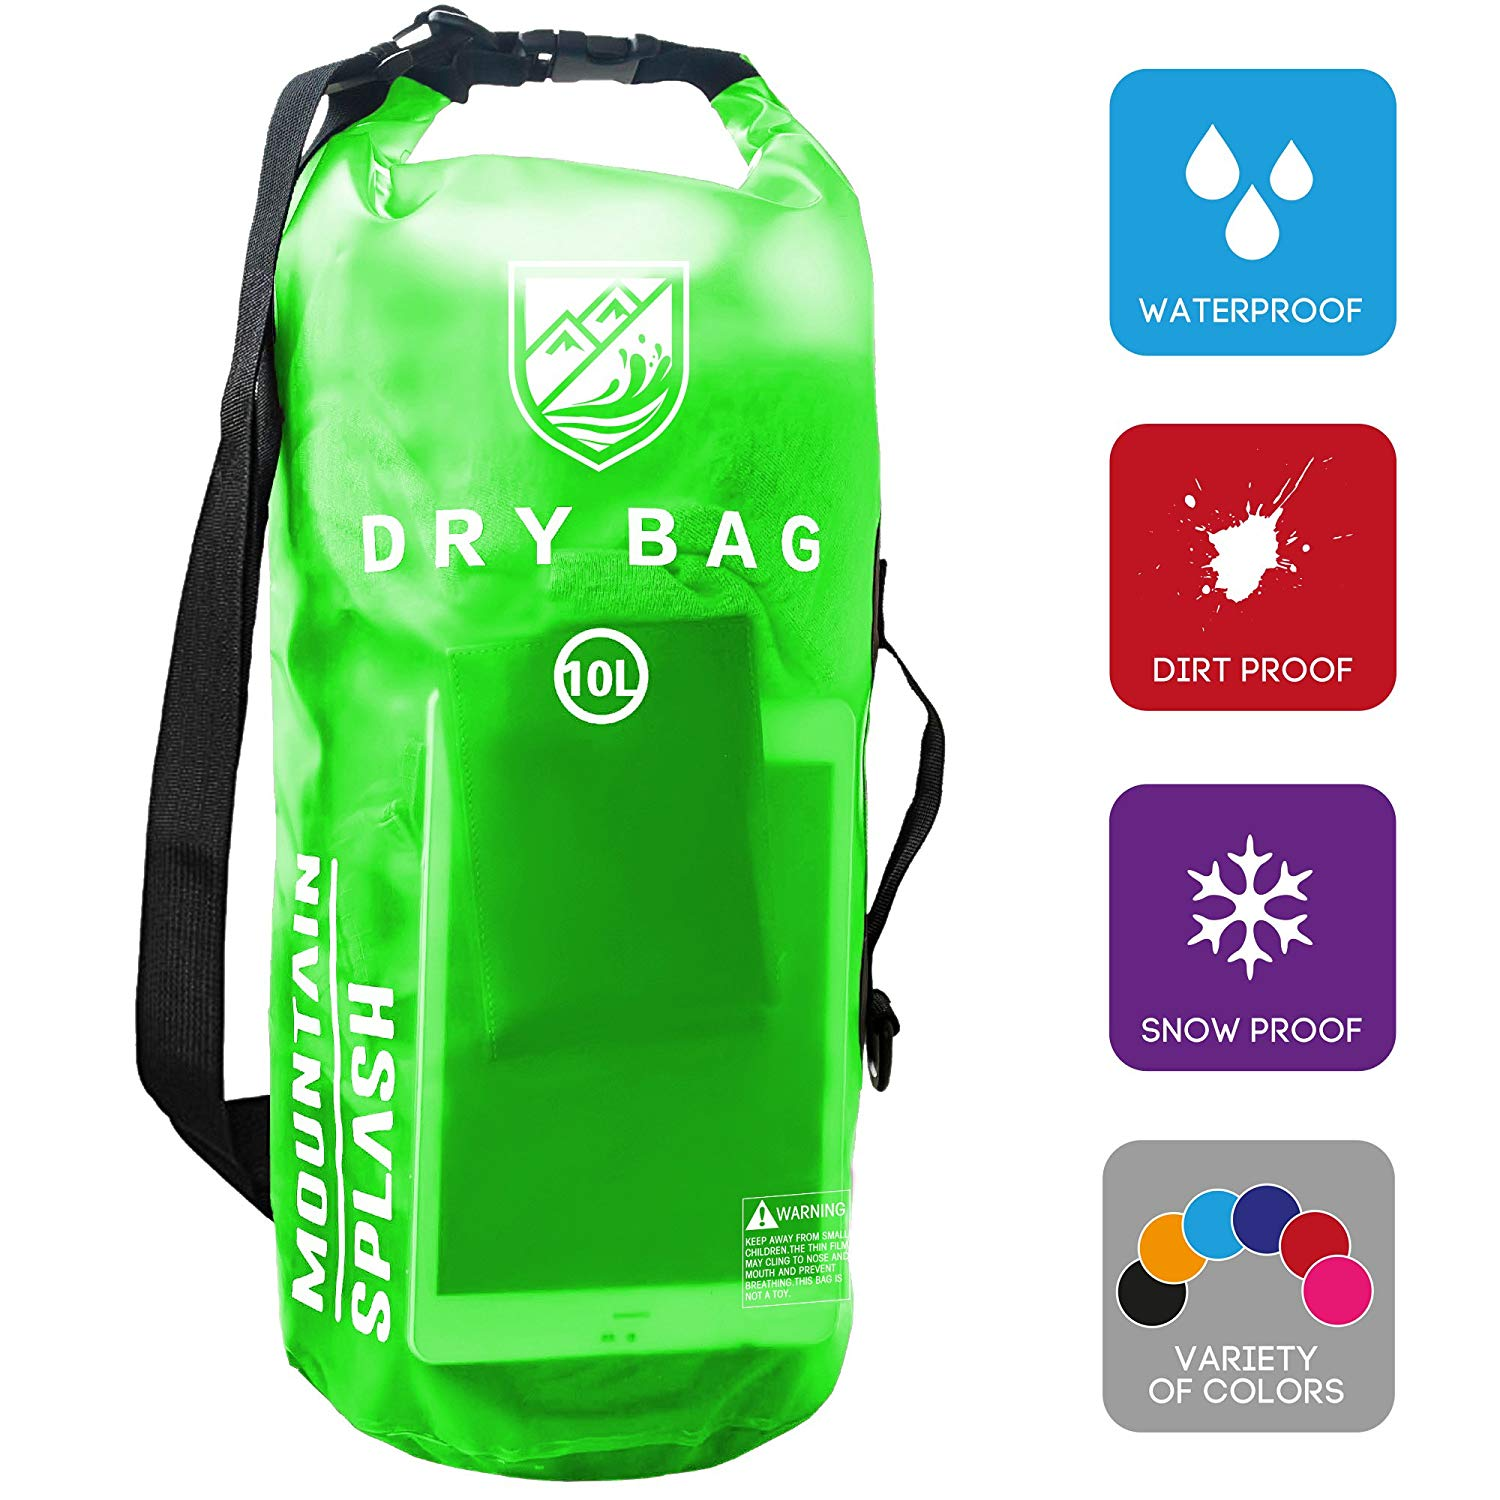 Boating Vacation. Waterproof Dry Bag 5L//10L//20L-Water Resistant Lightweight Backpack with Handle-Floating Dry Storage Ocean Bag Keeps Gear Impervious to Water-Perfect for Kayaking Birthday Gift